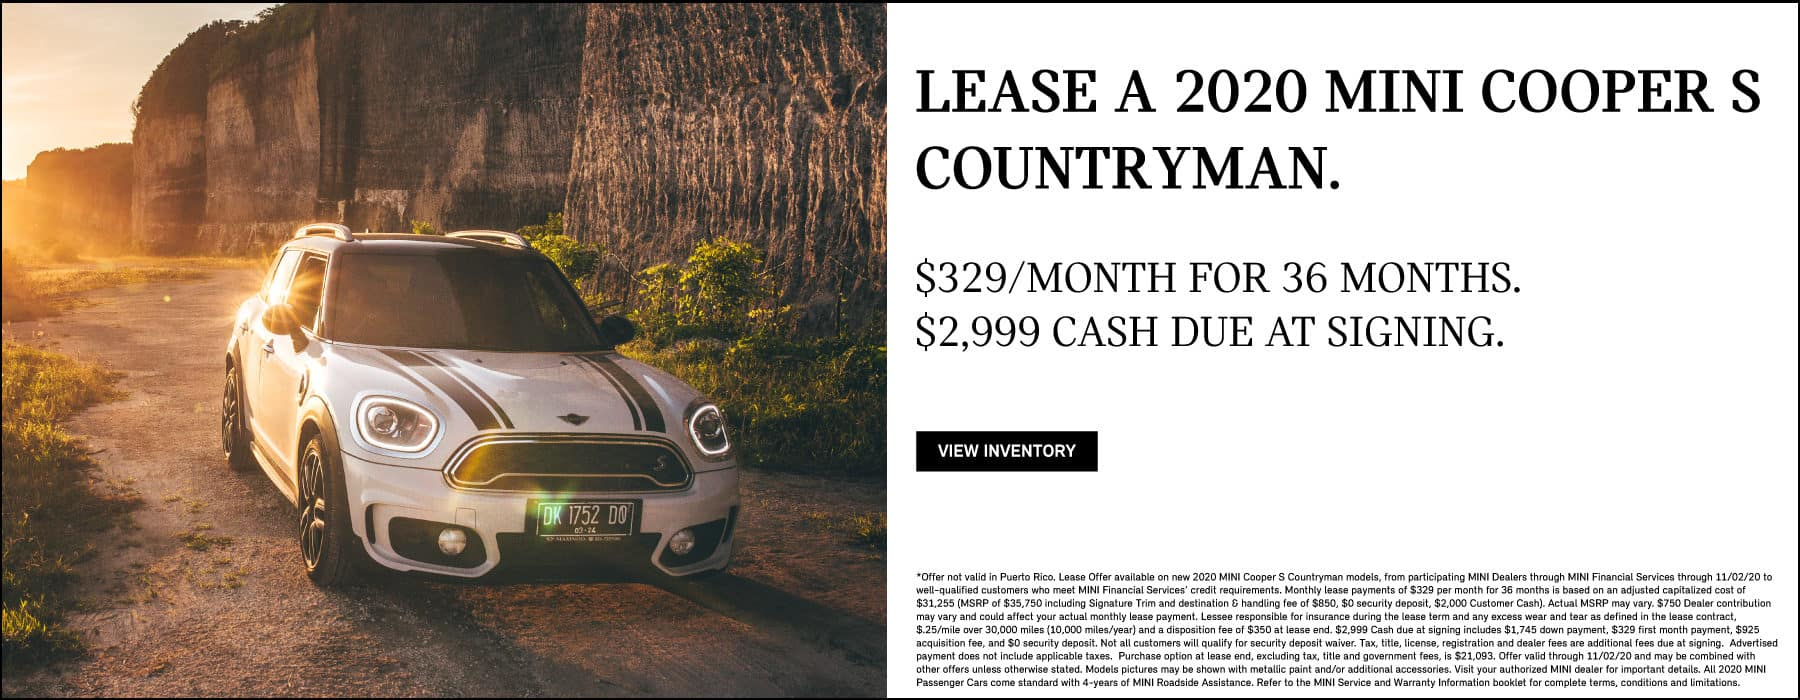 LEASE A 2020 MINI COOPER S COUNTRYMAN FOR $329 A MONTH FOR 36 MONTHS. $2,999 CASH DUE AT SIGNING. VIEW INVENTORY BUTTON. *Offer not valid in Puerto Rico. Lease Offer available on new 2020 MINI Cooper S Countryman models, from participating MINI Dealers through MINI Financial Services through 11/02/20 to well-qualified customers who meet MINI Financial Services' credit requirements. Monthly lease payments of $329 per month for 36 months is based on an adjusted capitalized cost of $31,255 (MSRP of $35,750 including Signature Trim and destination & handling fee of $850, $0 security deposit, $2,000 Customer Cash). Actual MSRP may vary. $750 Dealer contribution may vary and could affect your actual monthly lease payment. Lessee responsible for insurance during the lease term and any excess wear and tear as defined in the lease contract, $.25/mile over 30,000 miles (10,000 miles/year) and a disposition fee of $350 at lease end. $2,999 Cash due at signing includes $1,745 down payment, $329 first month payment, $925 acquisition fee, and $0 security deposit. Not all customers will qualify for security deposit waiver. Tax, title, license, registration and dealer fees are additional fees due at signing. Advertised payment does not include applicable taxes. Purchase option at lease end, excluding tax, title and government fees, is $21,093. Offer valid through 11/02/20 and may be combined with other offers unless otherwise stated. Models pictures may be shown with metallic paint and/or additional accessories. Visit your authorized MINI dealer for important details. All 2020 MINI Passenger Cars come standard with 4-years of MINI Roadside Assistance. Refer to the MINI Service and Warranty Information booklet for complete terms, conditions and limitations.